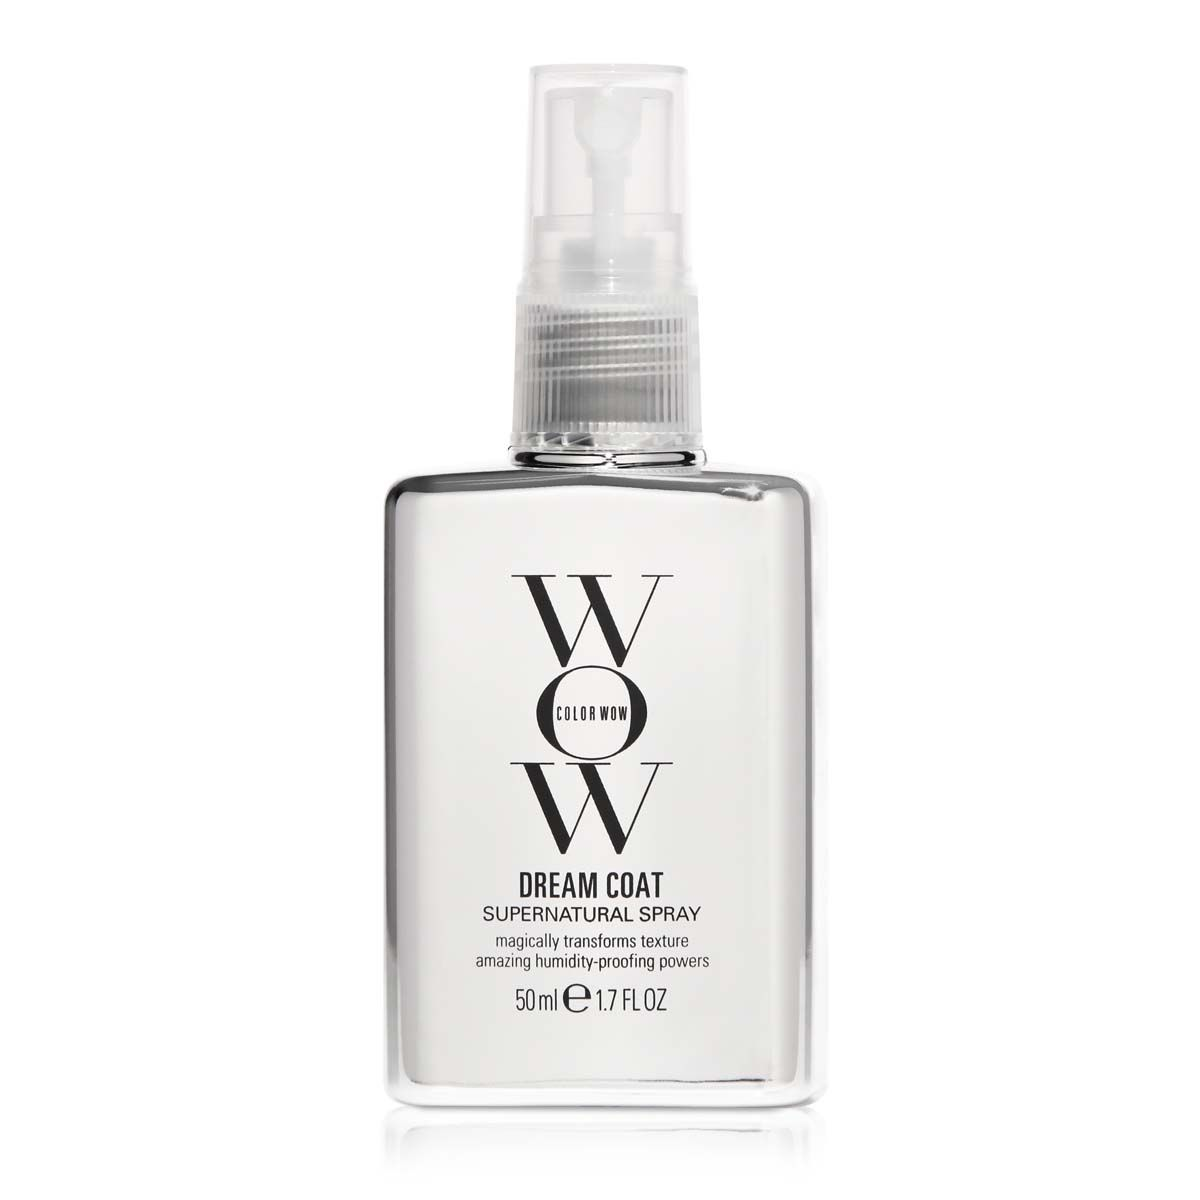 Color Wow Dream Coat Supernatural Spray Mini 50ml Color Wow Spray Wow Products